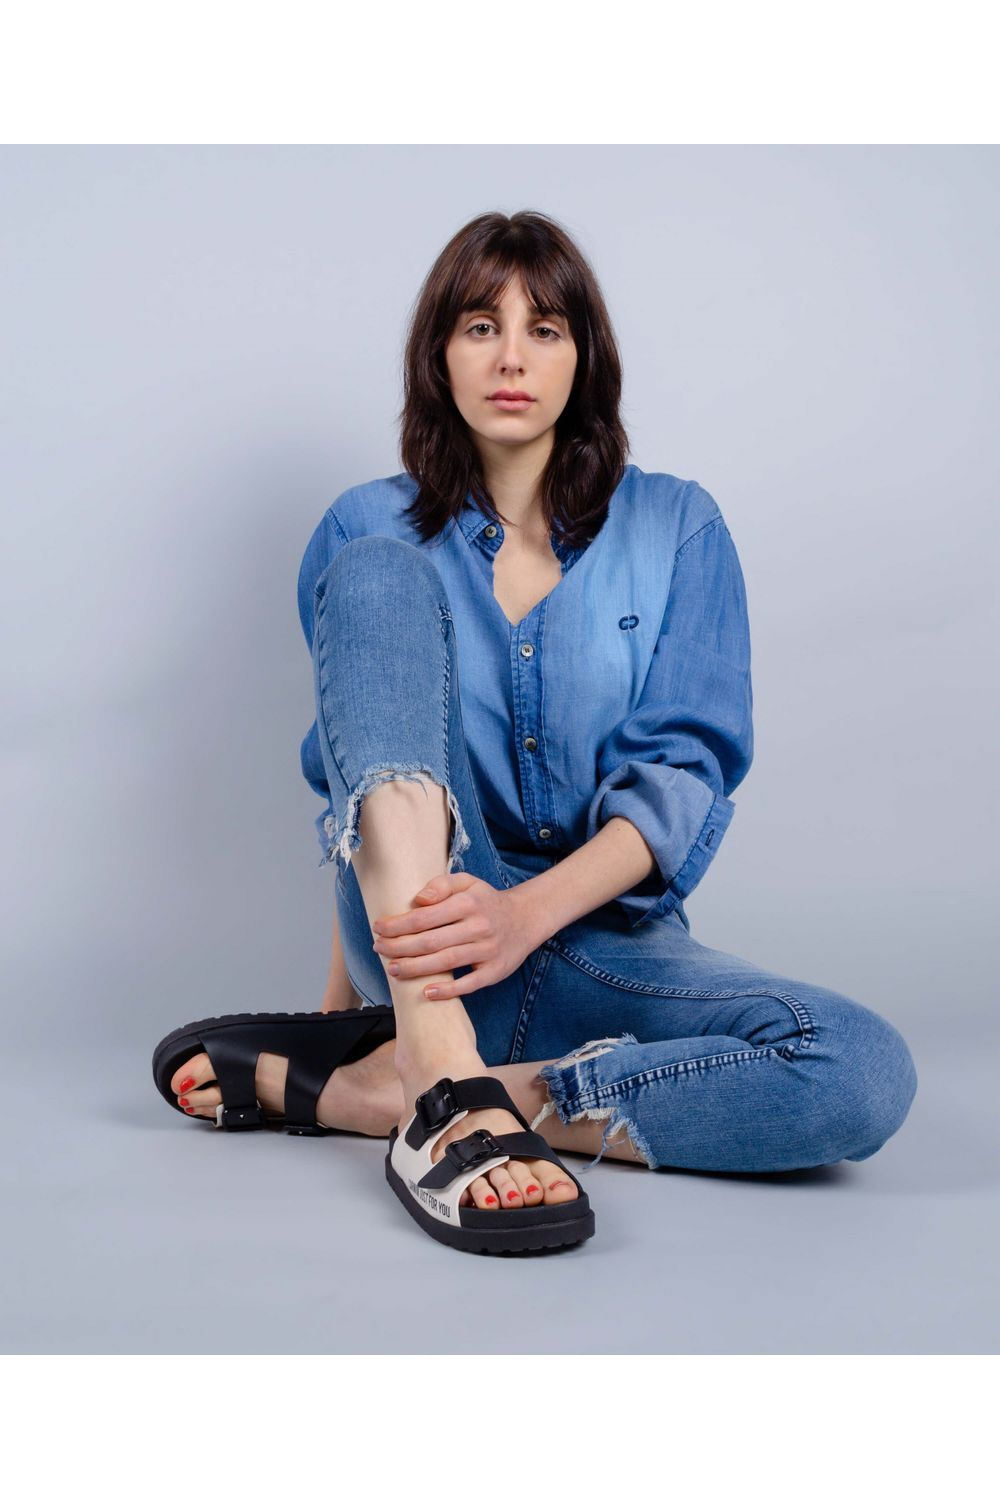 CALCA-JEANS-LY-DIFER-DUBIA-J1579-POSE1